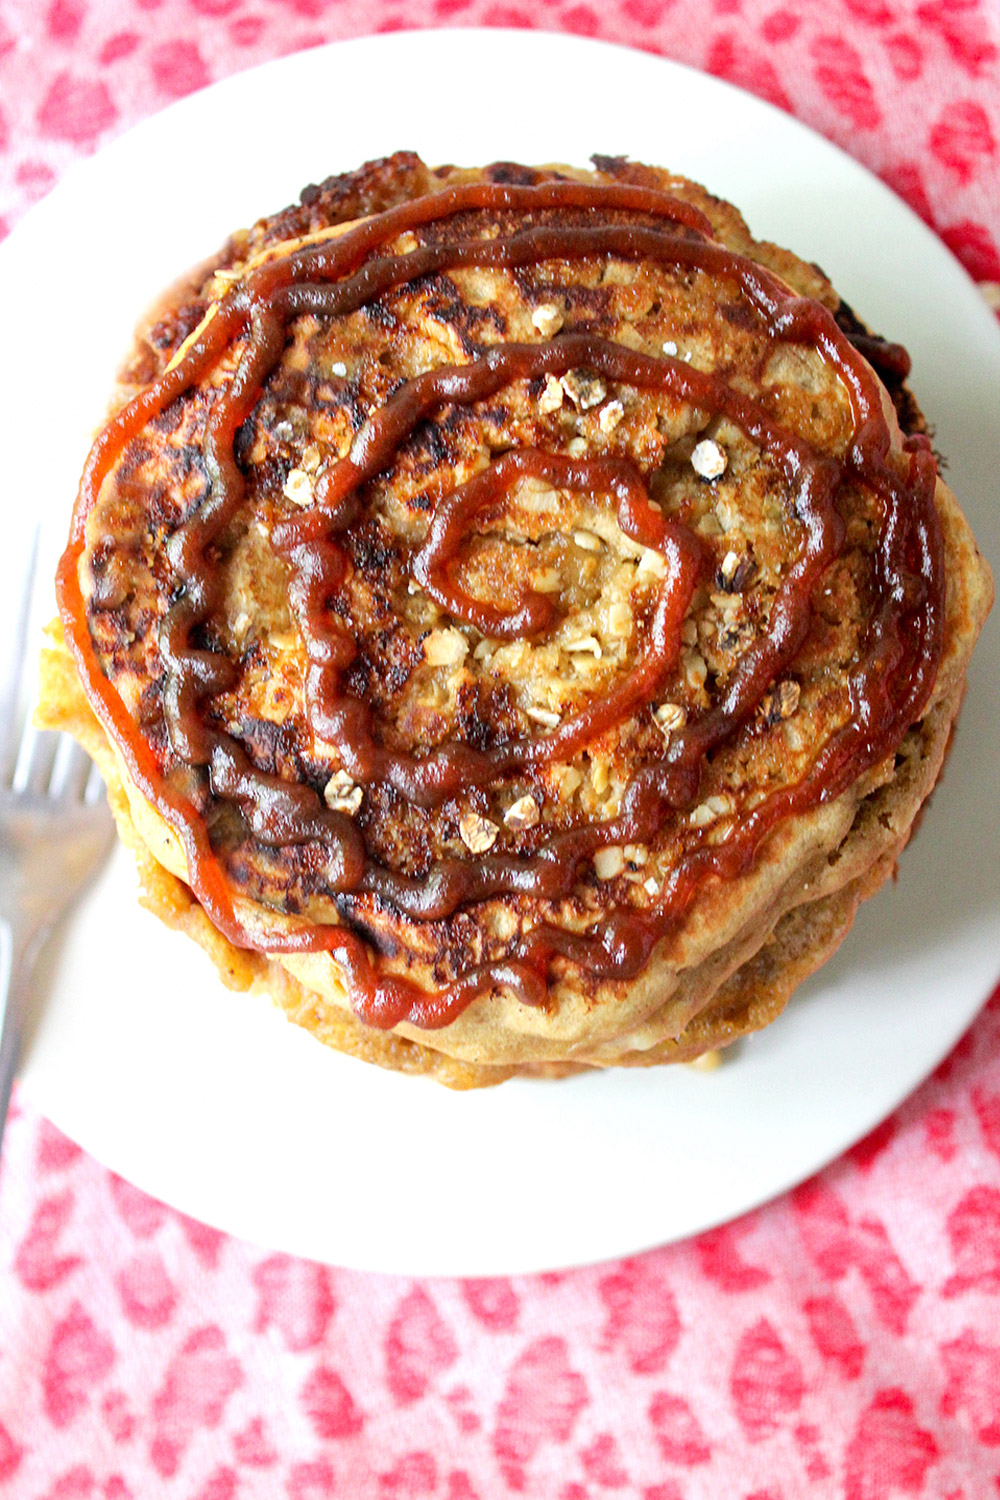 Overhead view of spiced apple butter pancakes showing spiral swirl of apple butter and oats struesel topping